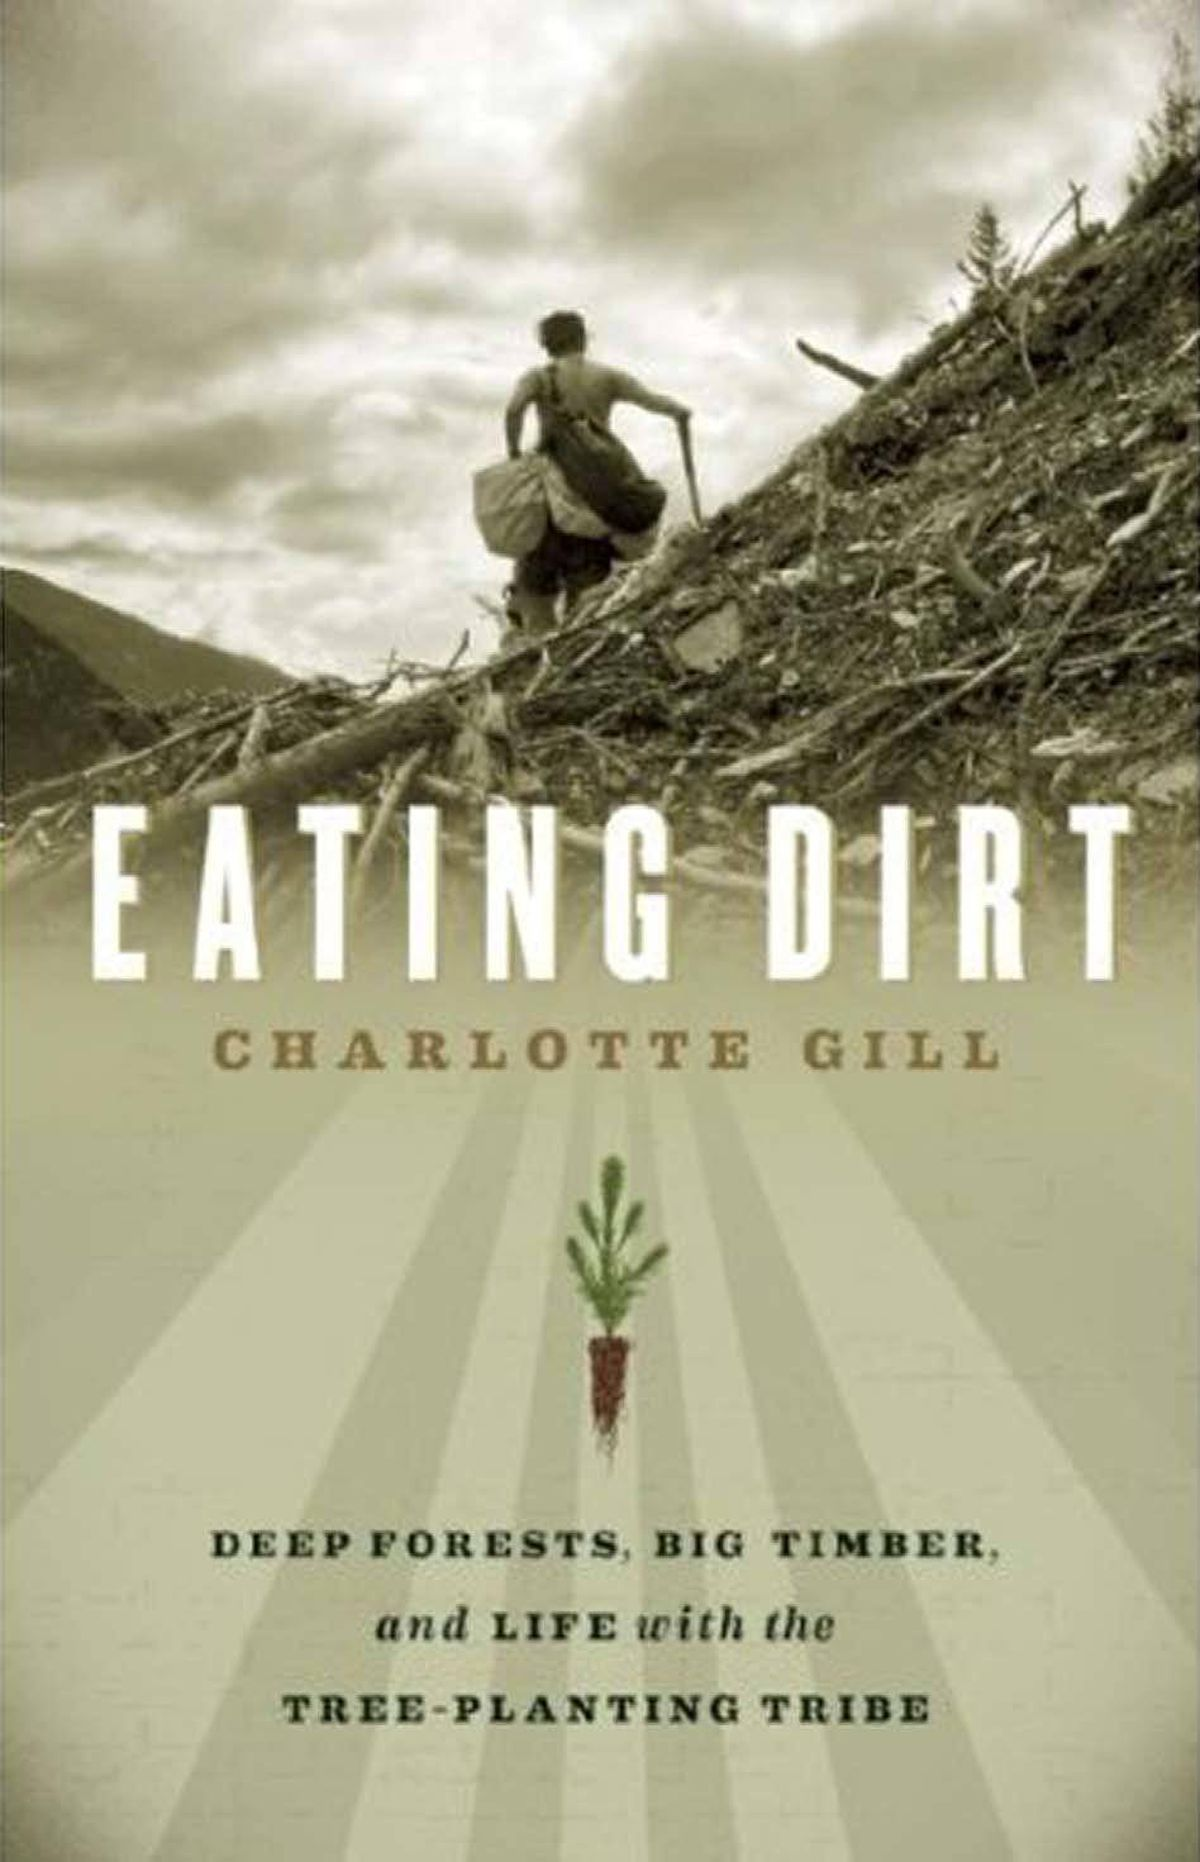 EATING DIRT Deep Forests, Big Timber, and Life with the Tree-Planting Tribe By Charlotte Gill (GreyStone) It is hard to say why a book full of mould, sodden clothing, bad weather, grizzly bears, broken-down trucks, blisters and tiny seedlings should be engaging, rewarding and full of knowledge, but Eating Dirt is so winning because it bridges the dizzying gulf between the people who command that work be done and the people who do it. – William Bryant Logan